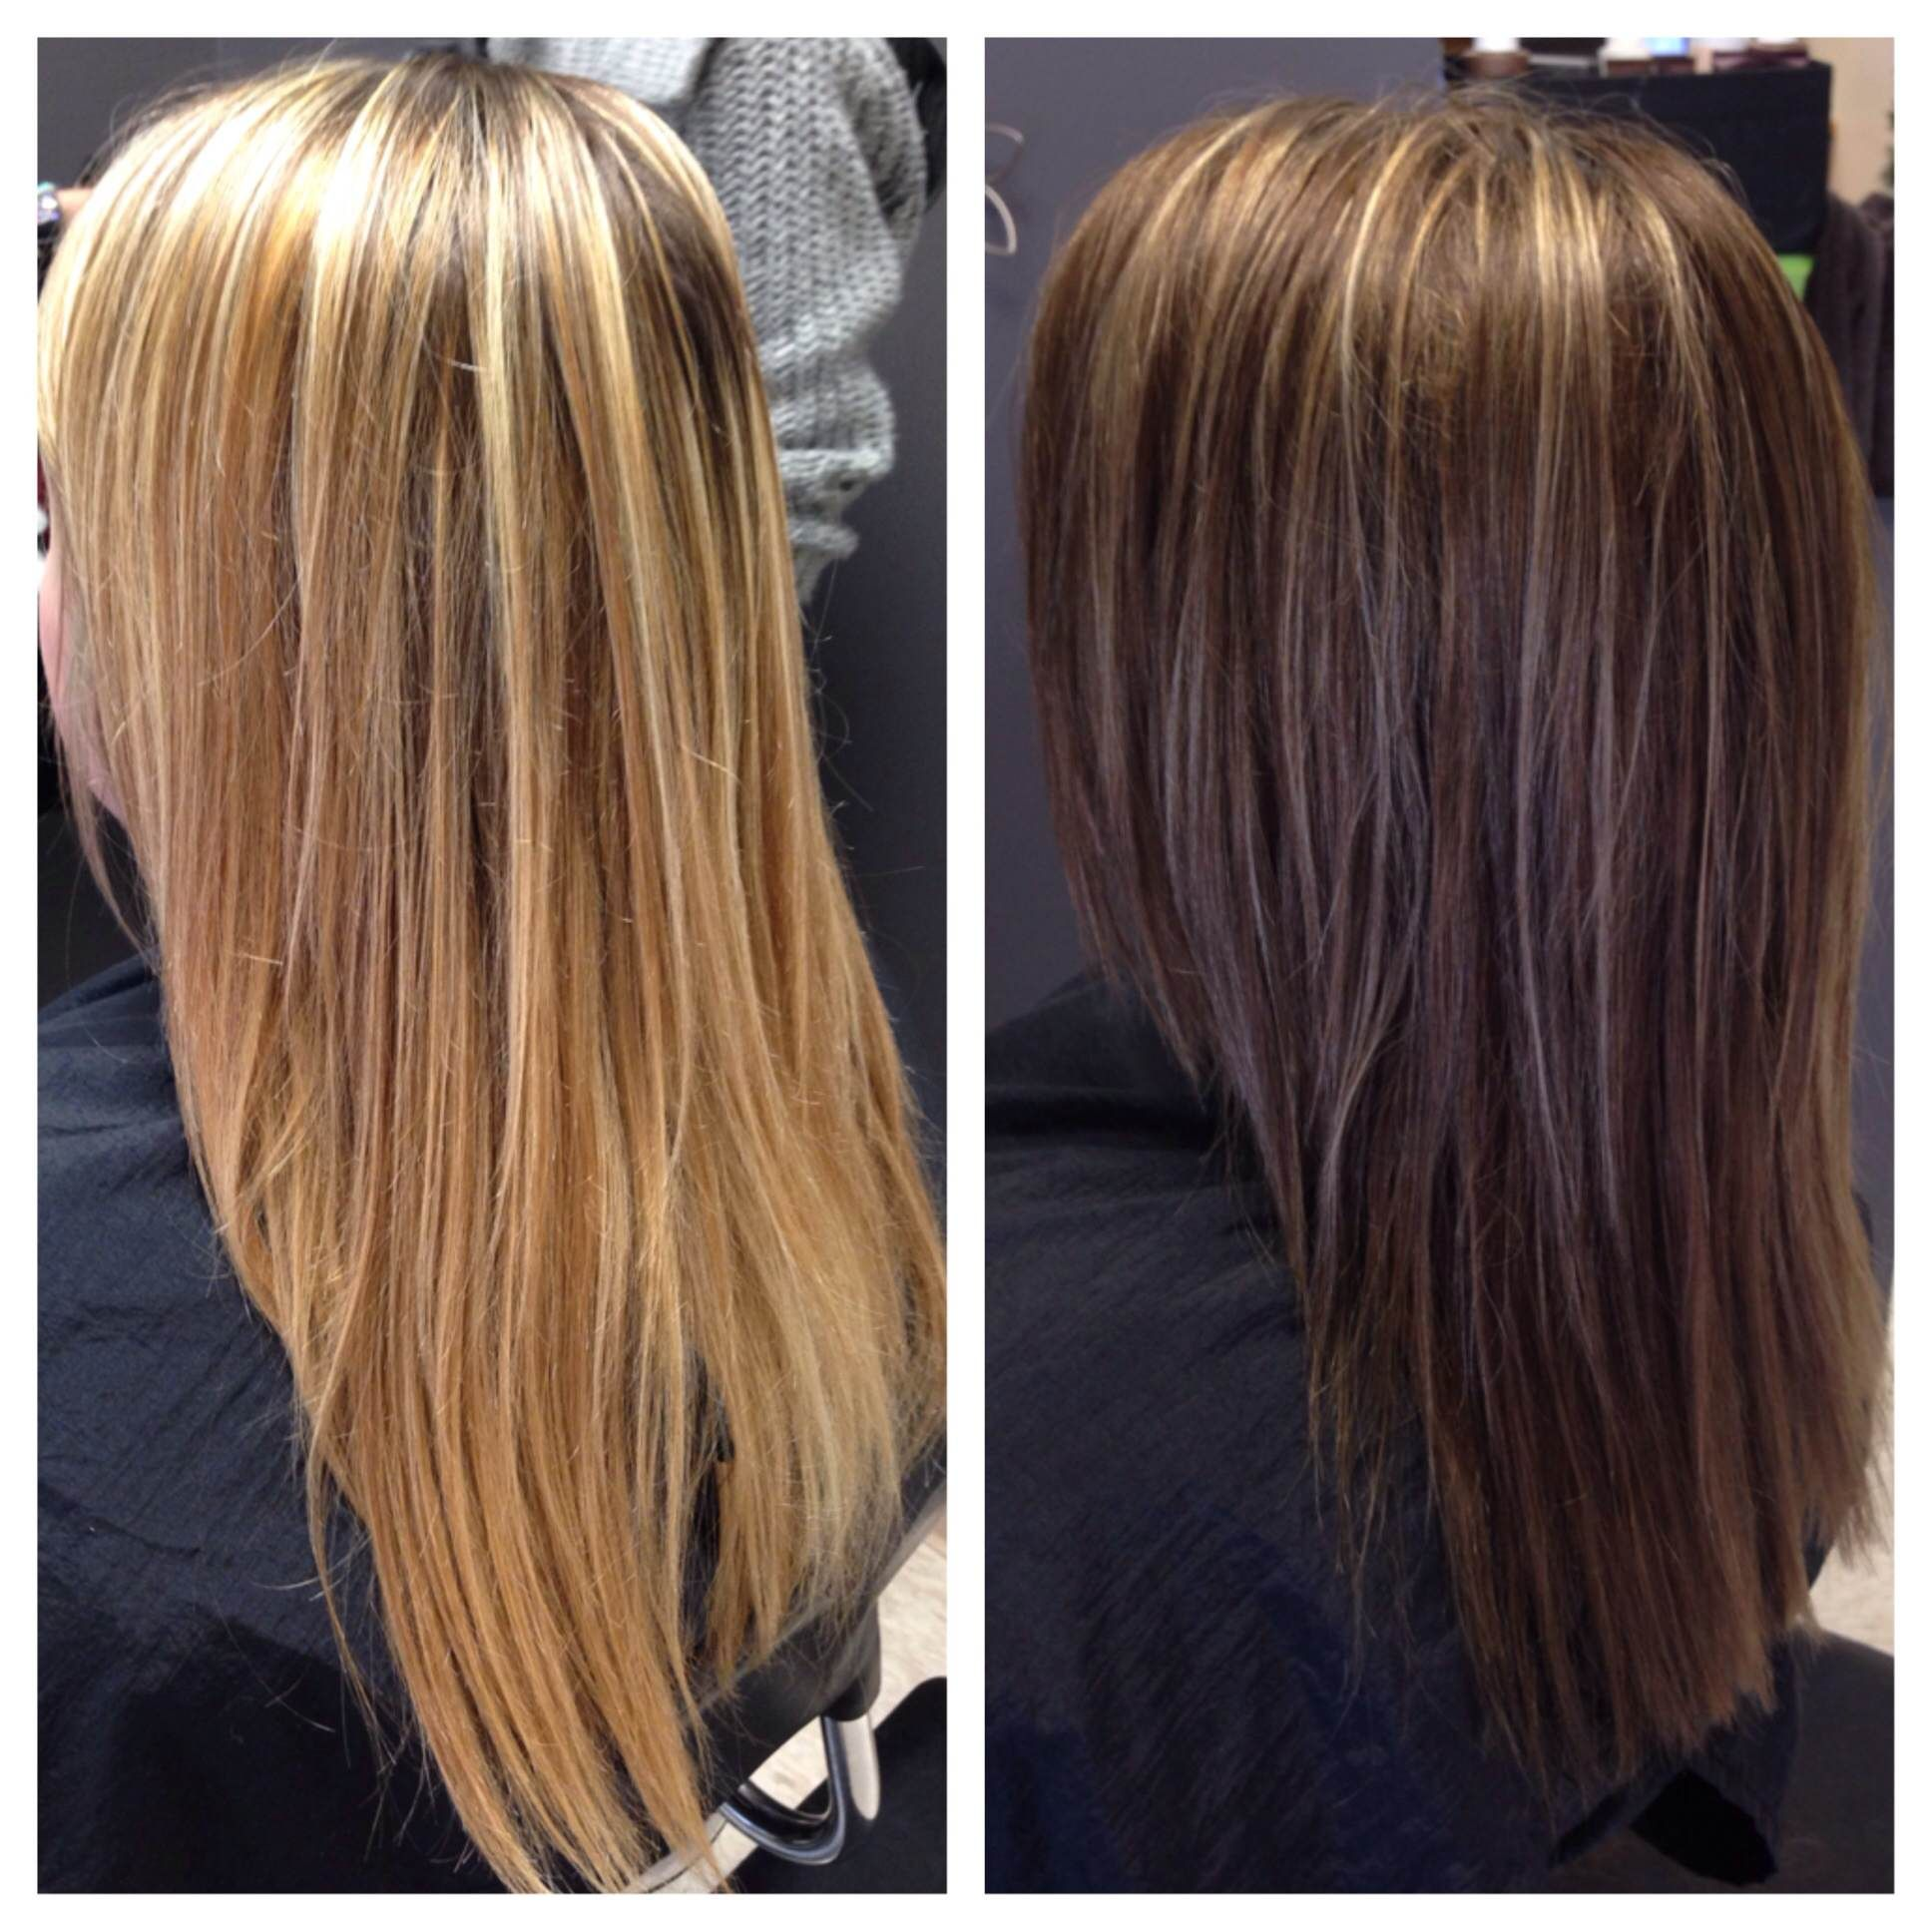 From Drab Blonde To Rich Beautiful Brown With A Few Highlights